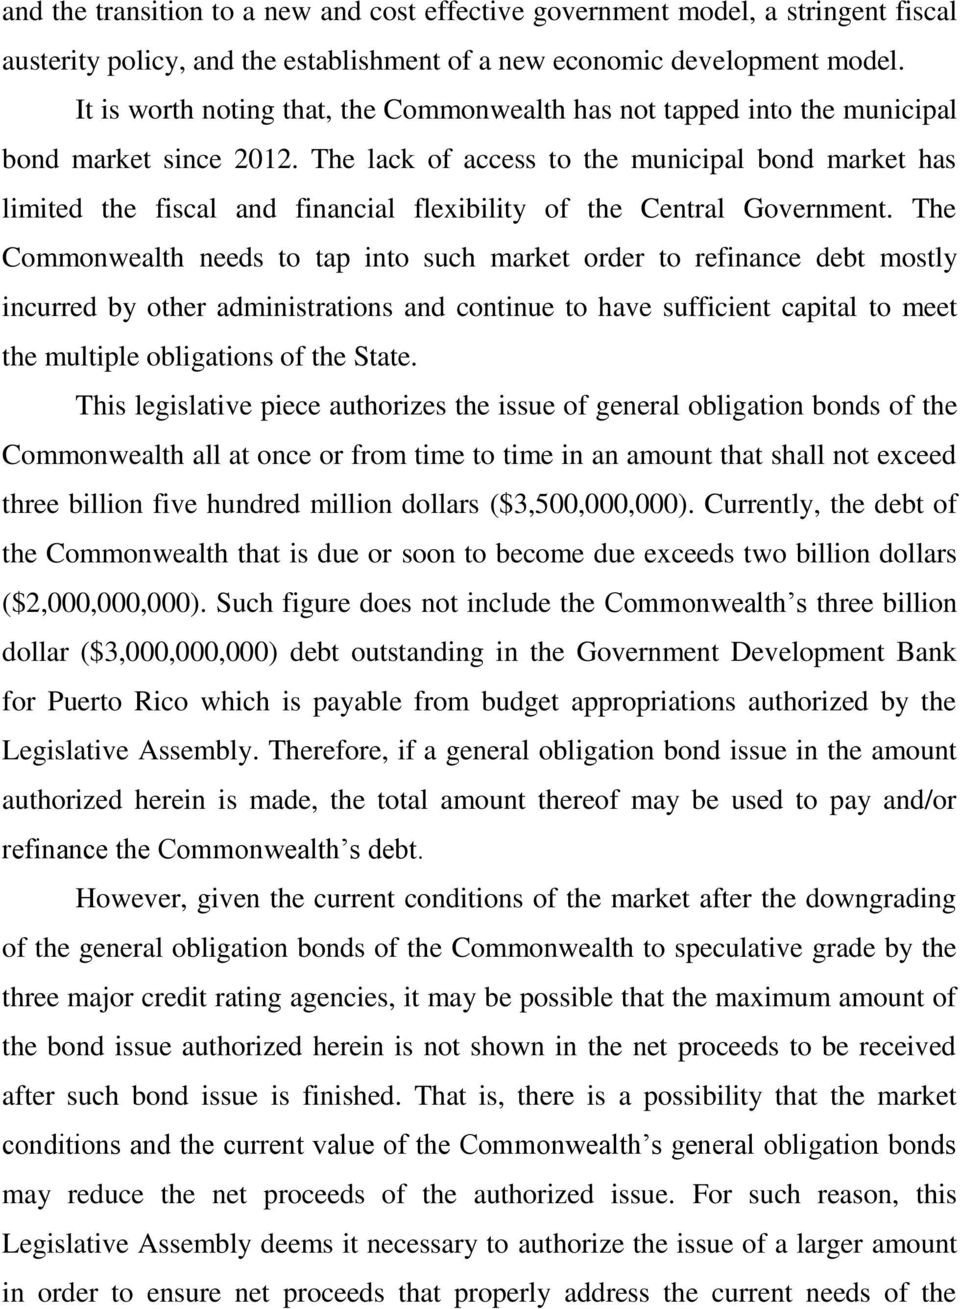 The lack of access to the municipal bond market has limited the fiscal and financial flexibility of the Central Government.